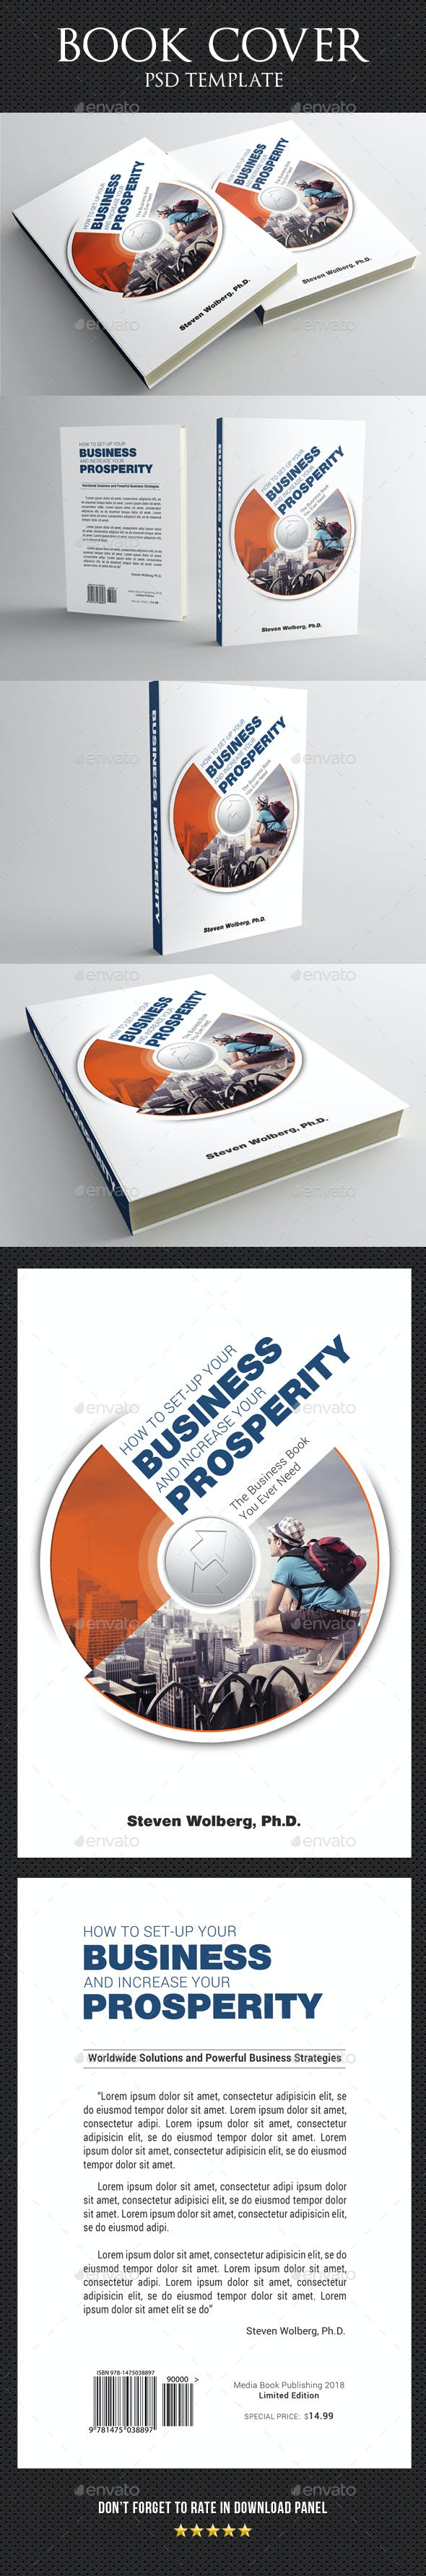 Book Cover Template 47